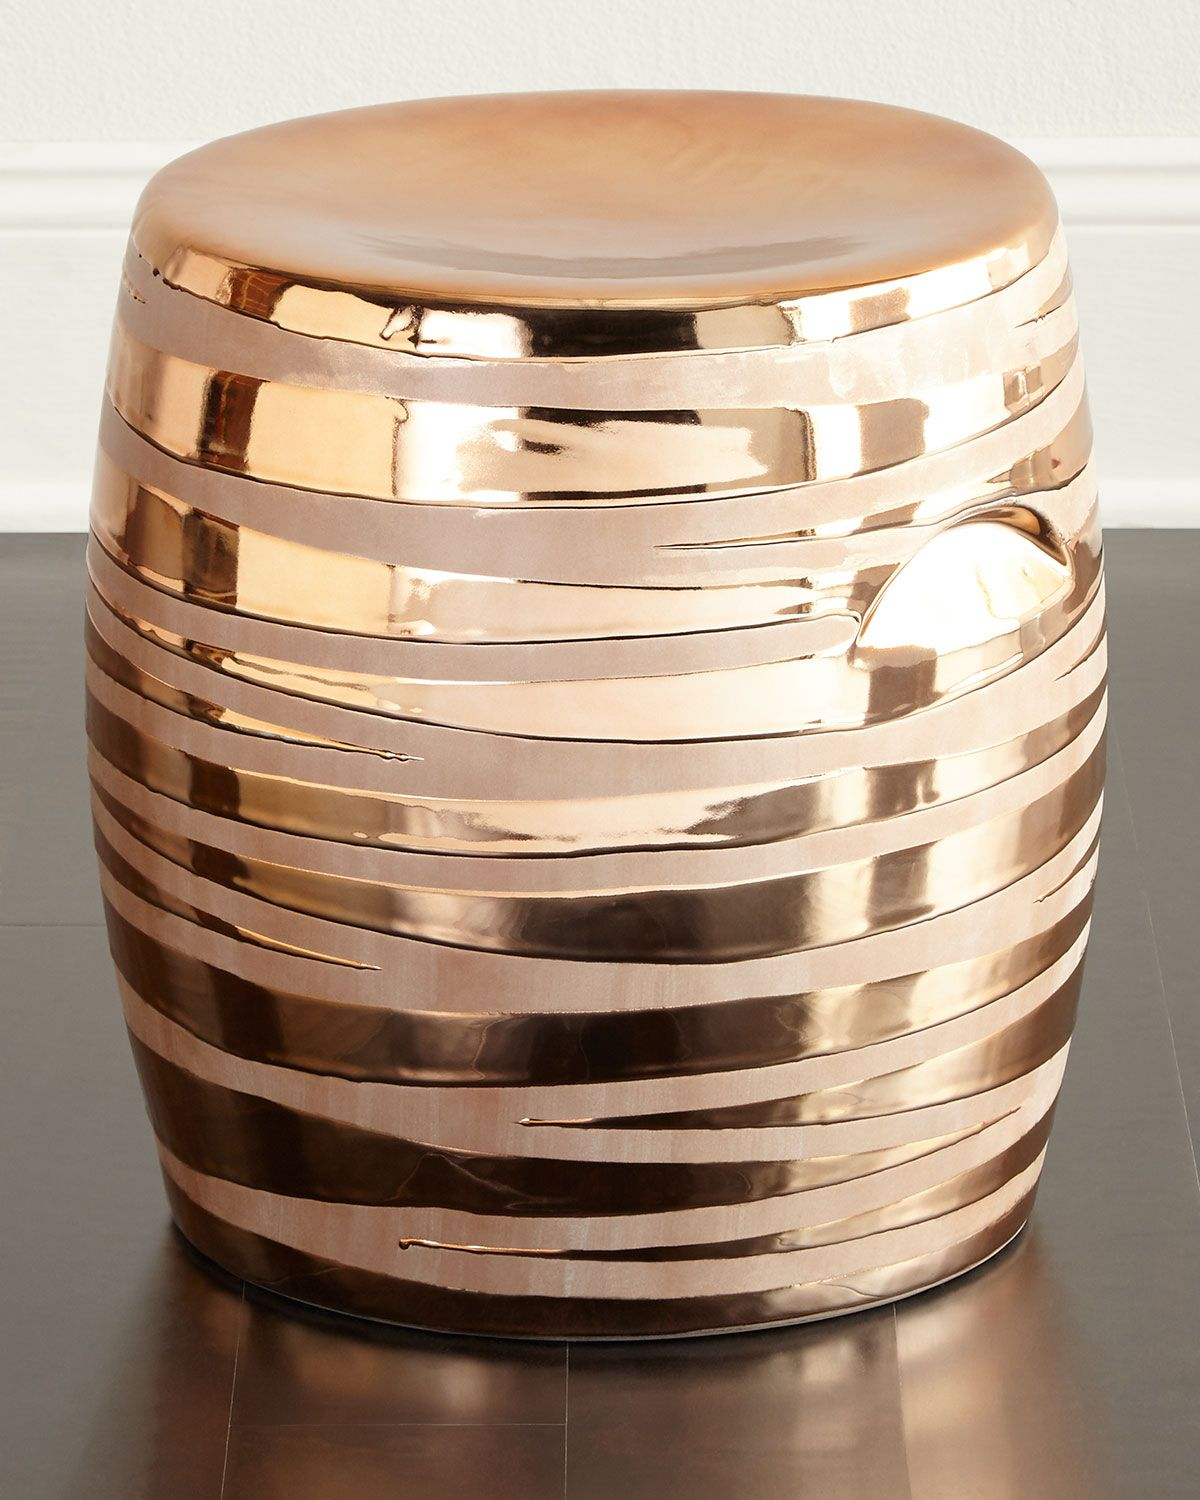 Shop Copper Metallic Garden Stool At Horchow, Where Youu0027ll Find New Lower  Shipping On Hundreds Of Home Furnishings And Gifts.